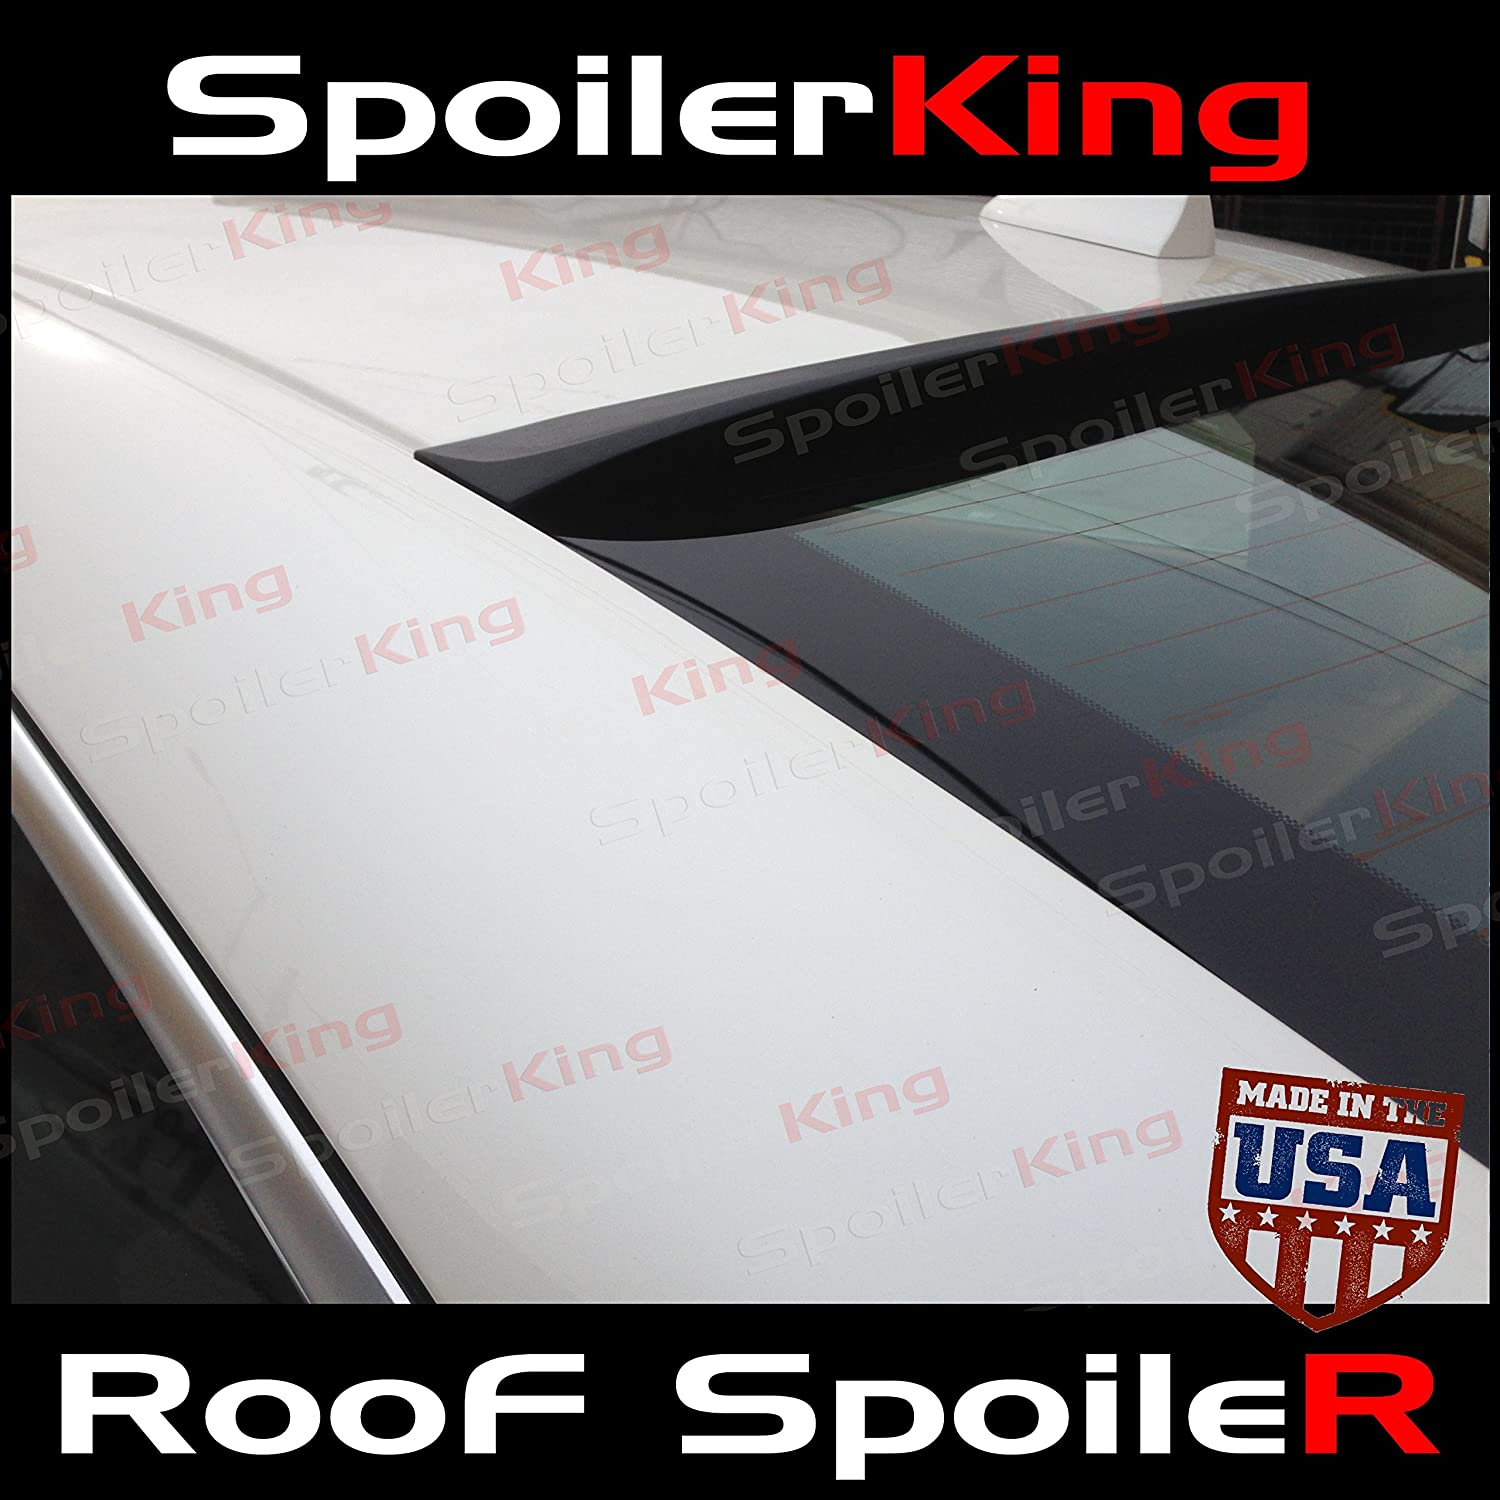 Spoiler King Roof Spoiler 284R Compatible with Chevy Impala 2014-on